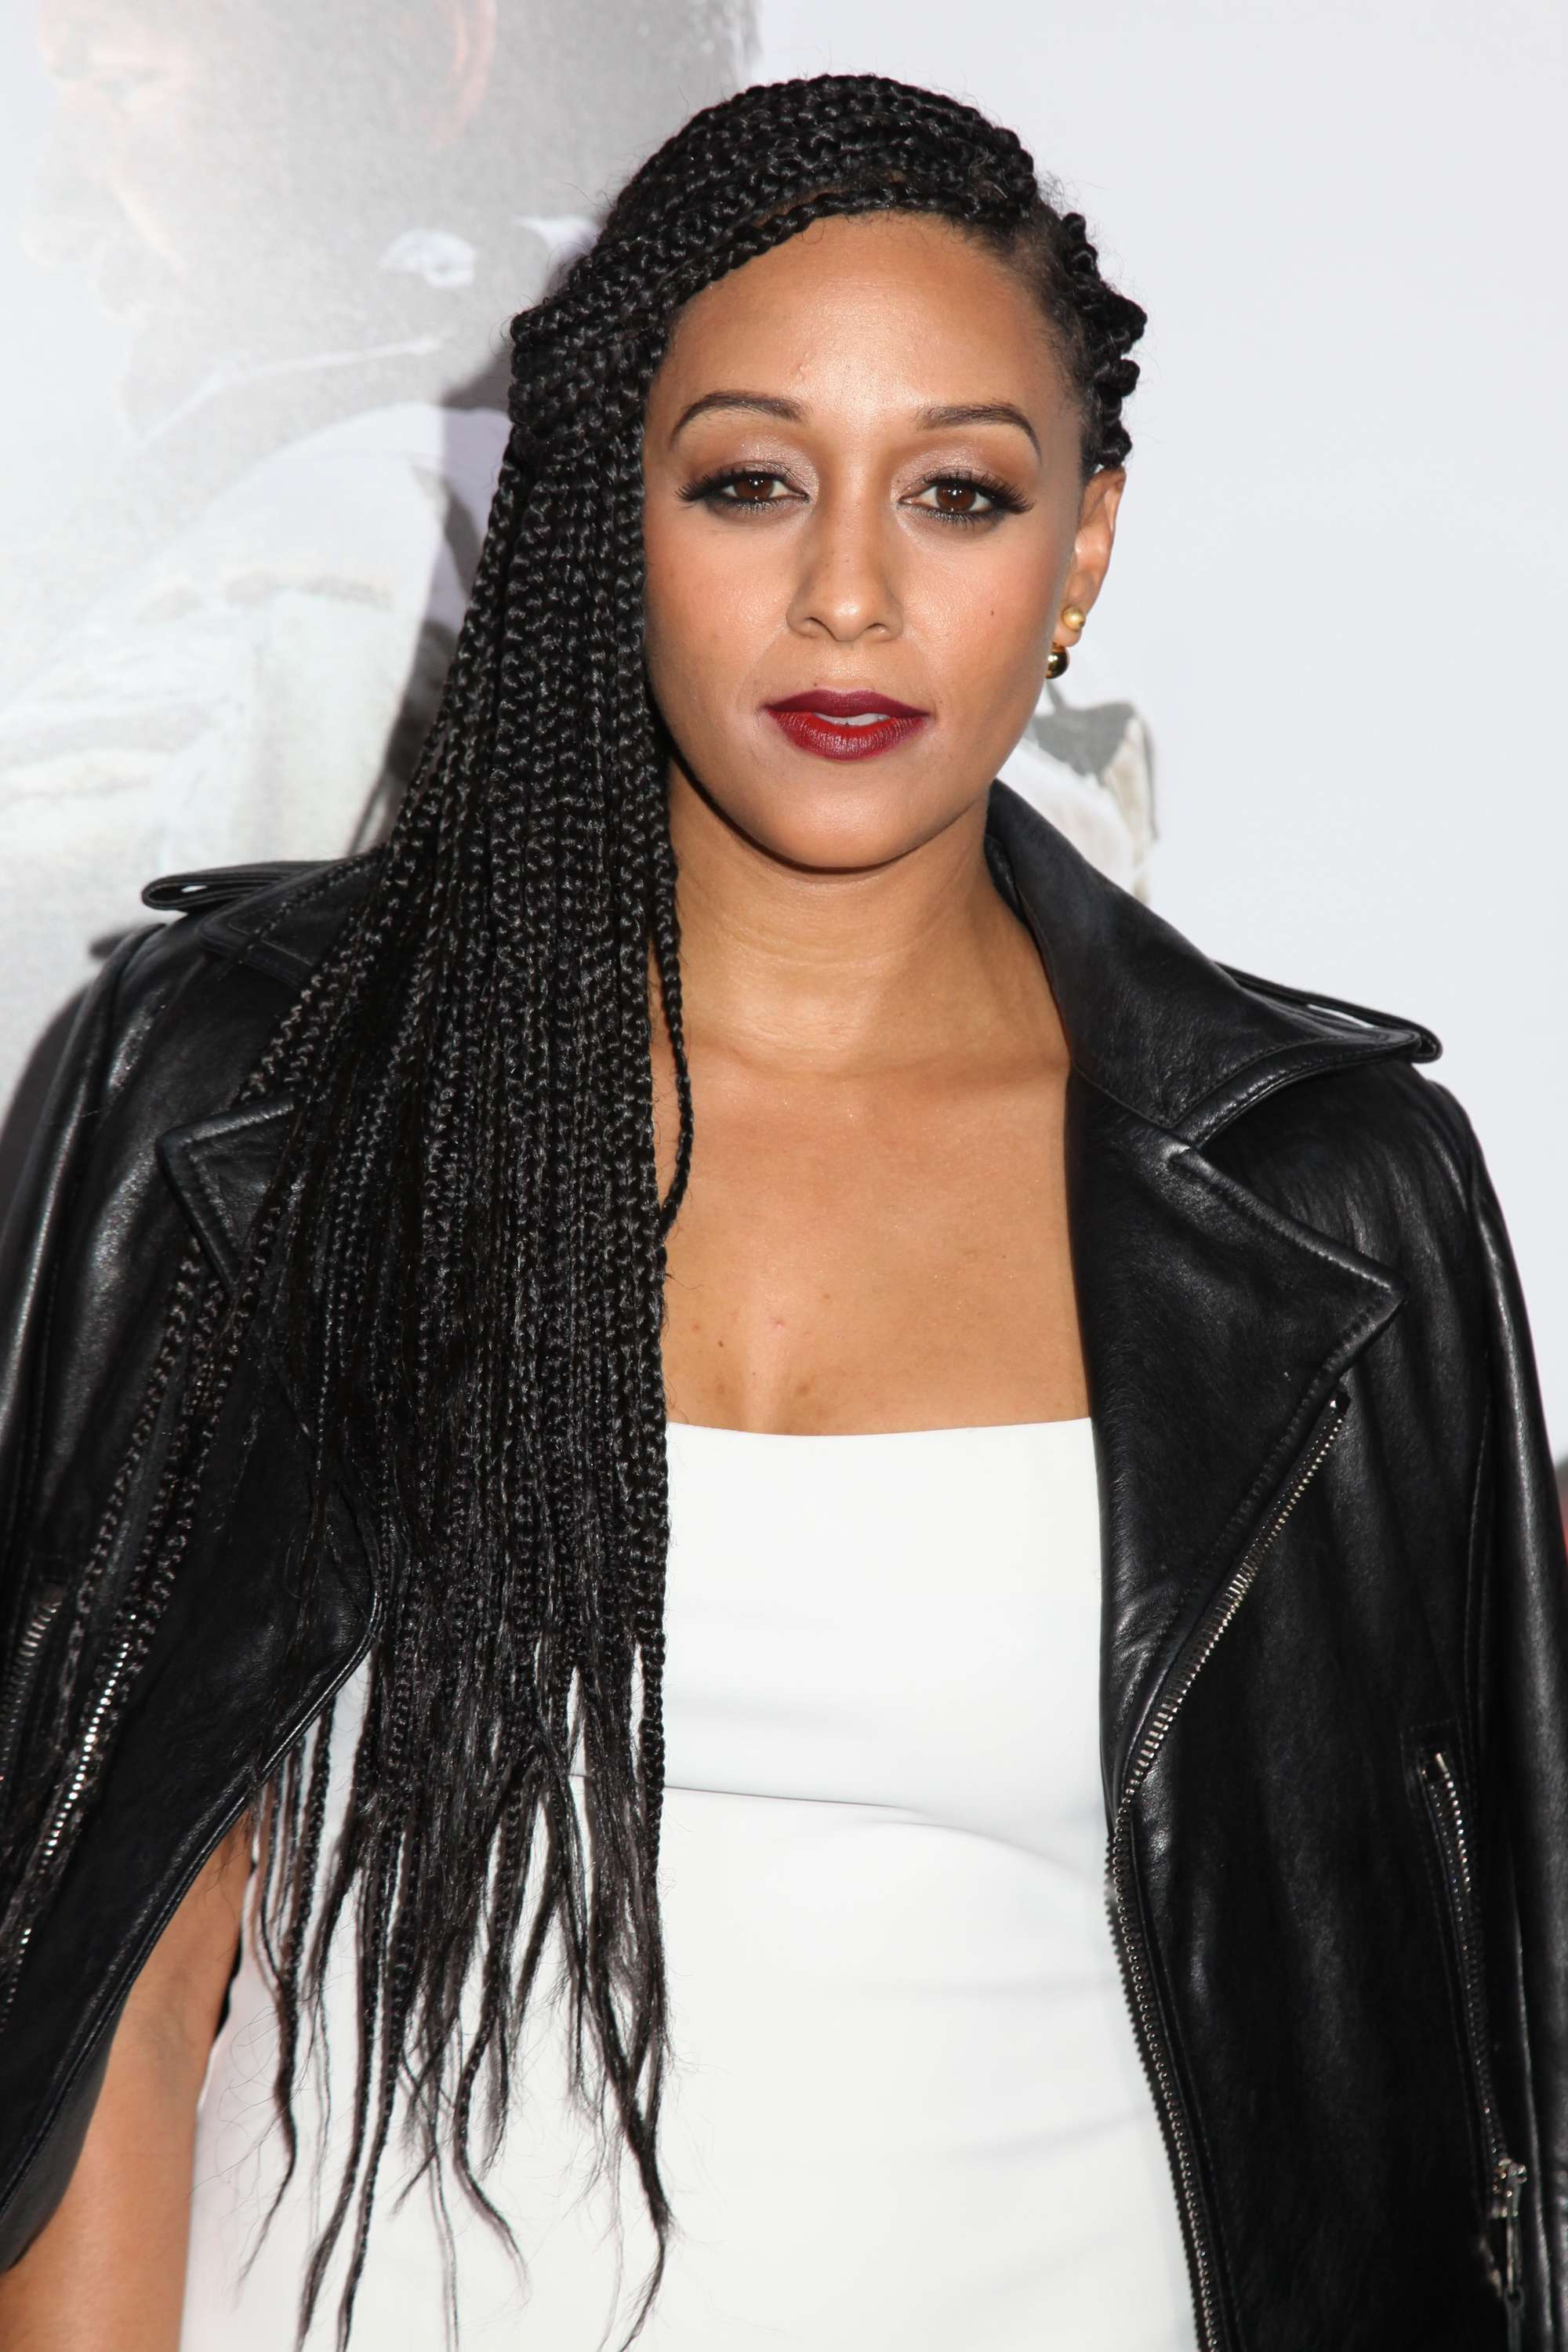 Box braids gallery: Tia Mowry with box braids to the side